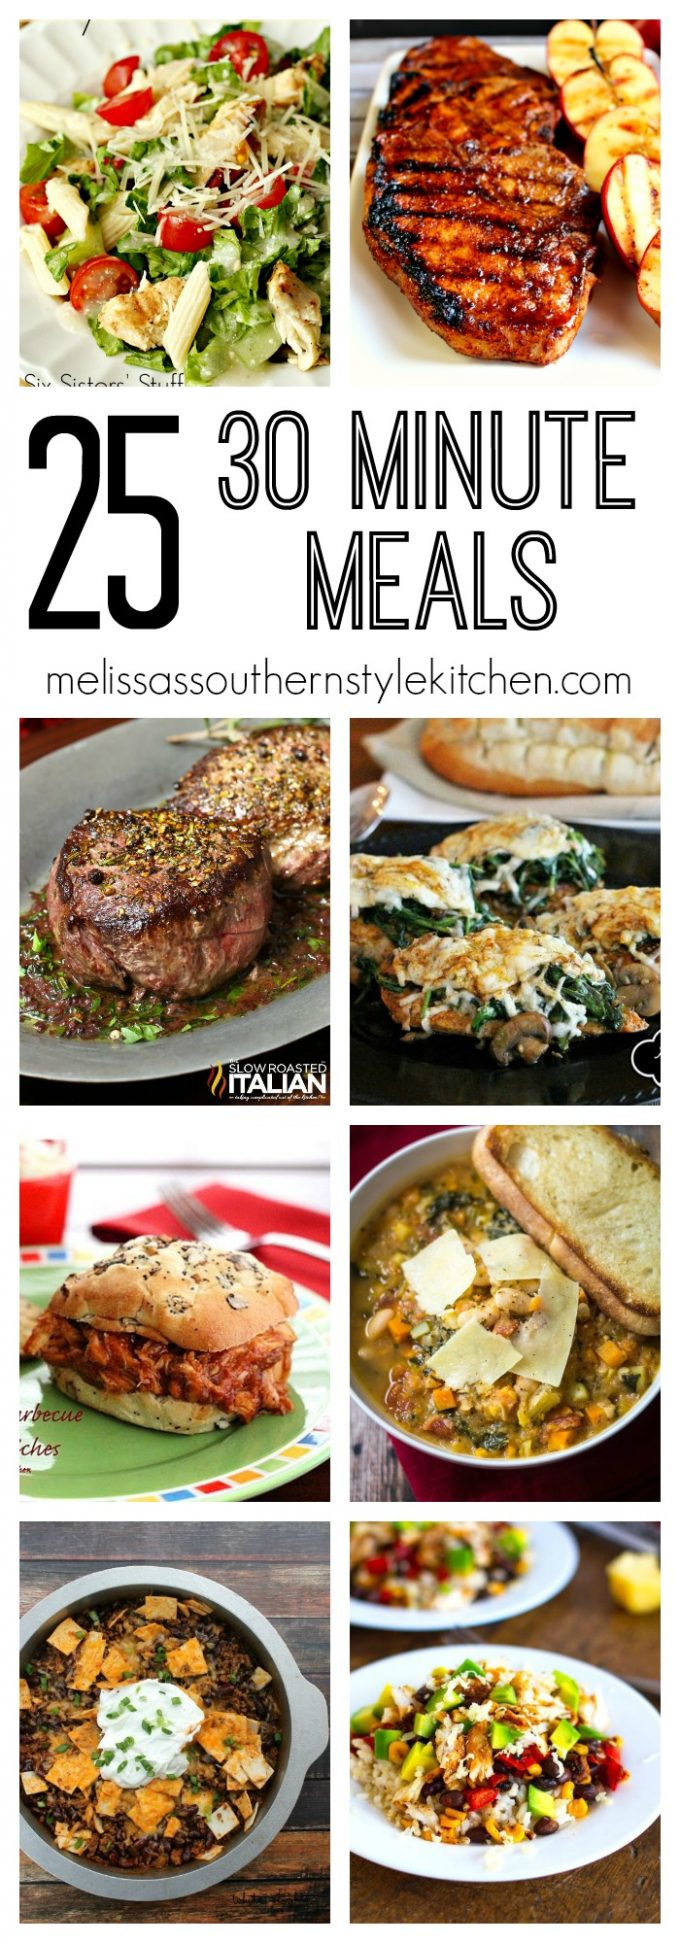 25 Thirty Minute Meals